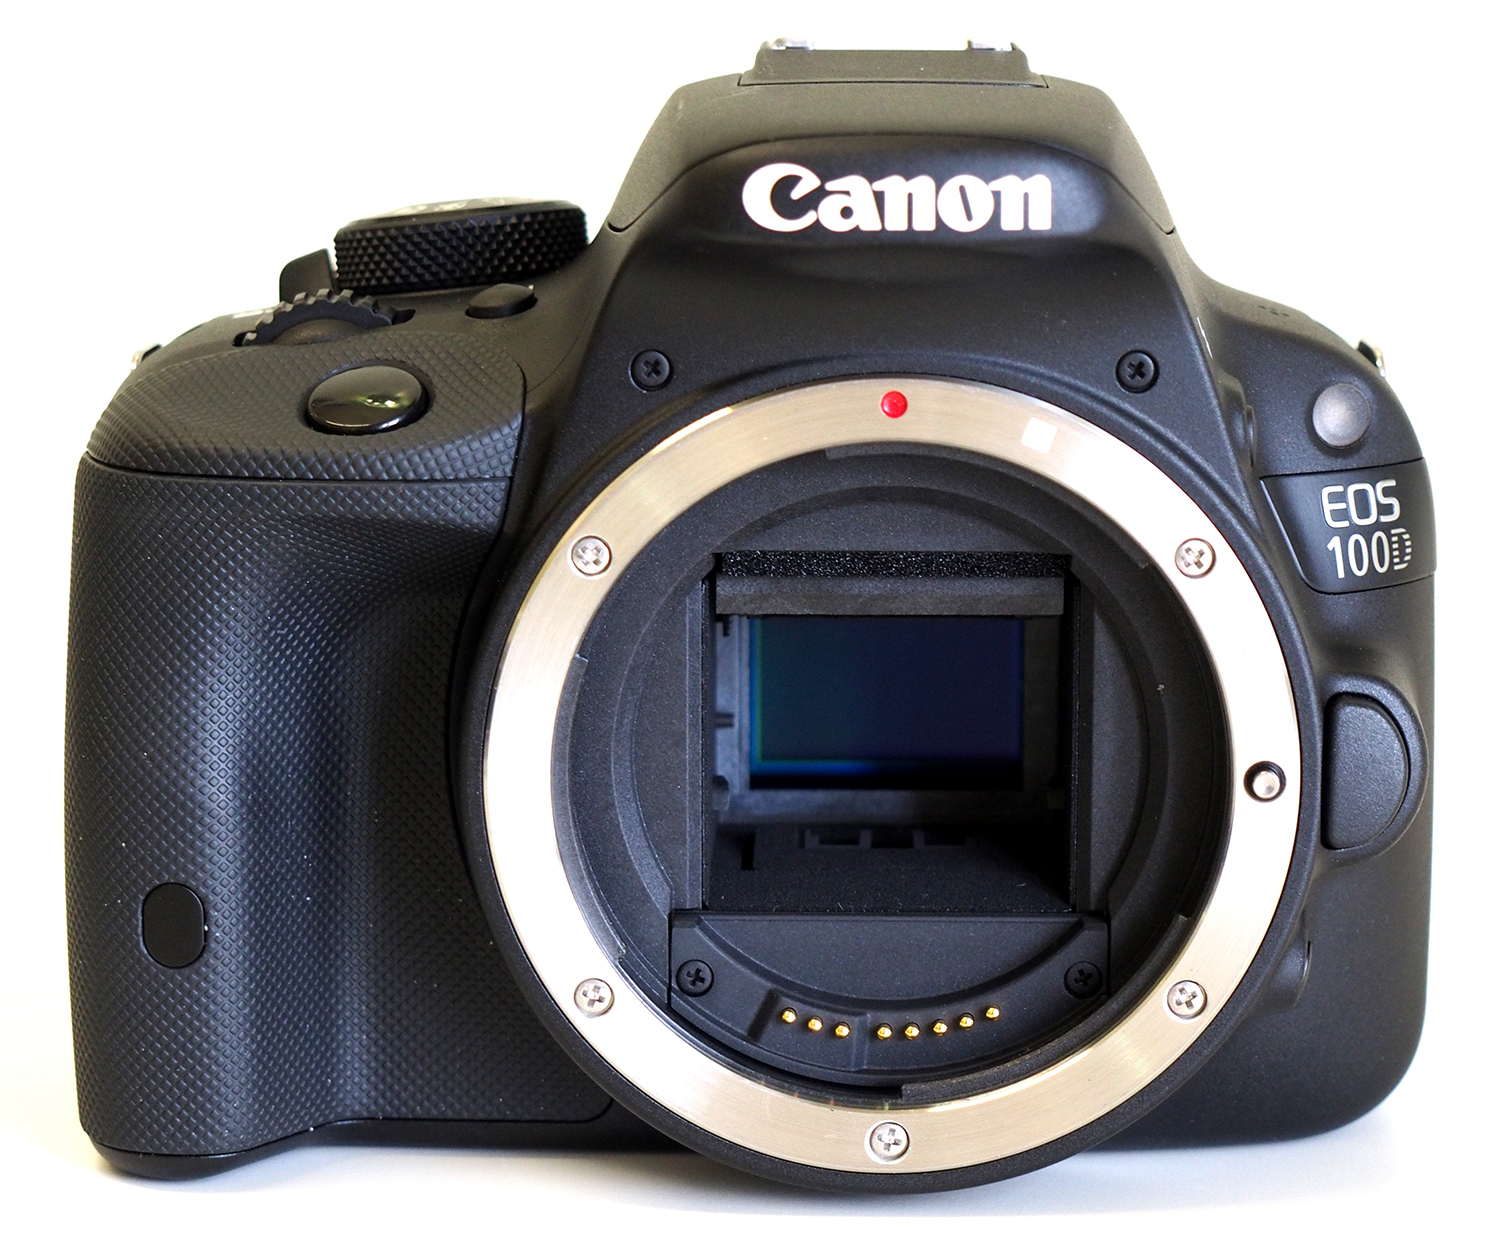 Canon EOS 100D/SL1 First Look Preview Roundup | Camera News at Cameraegg